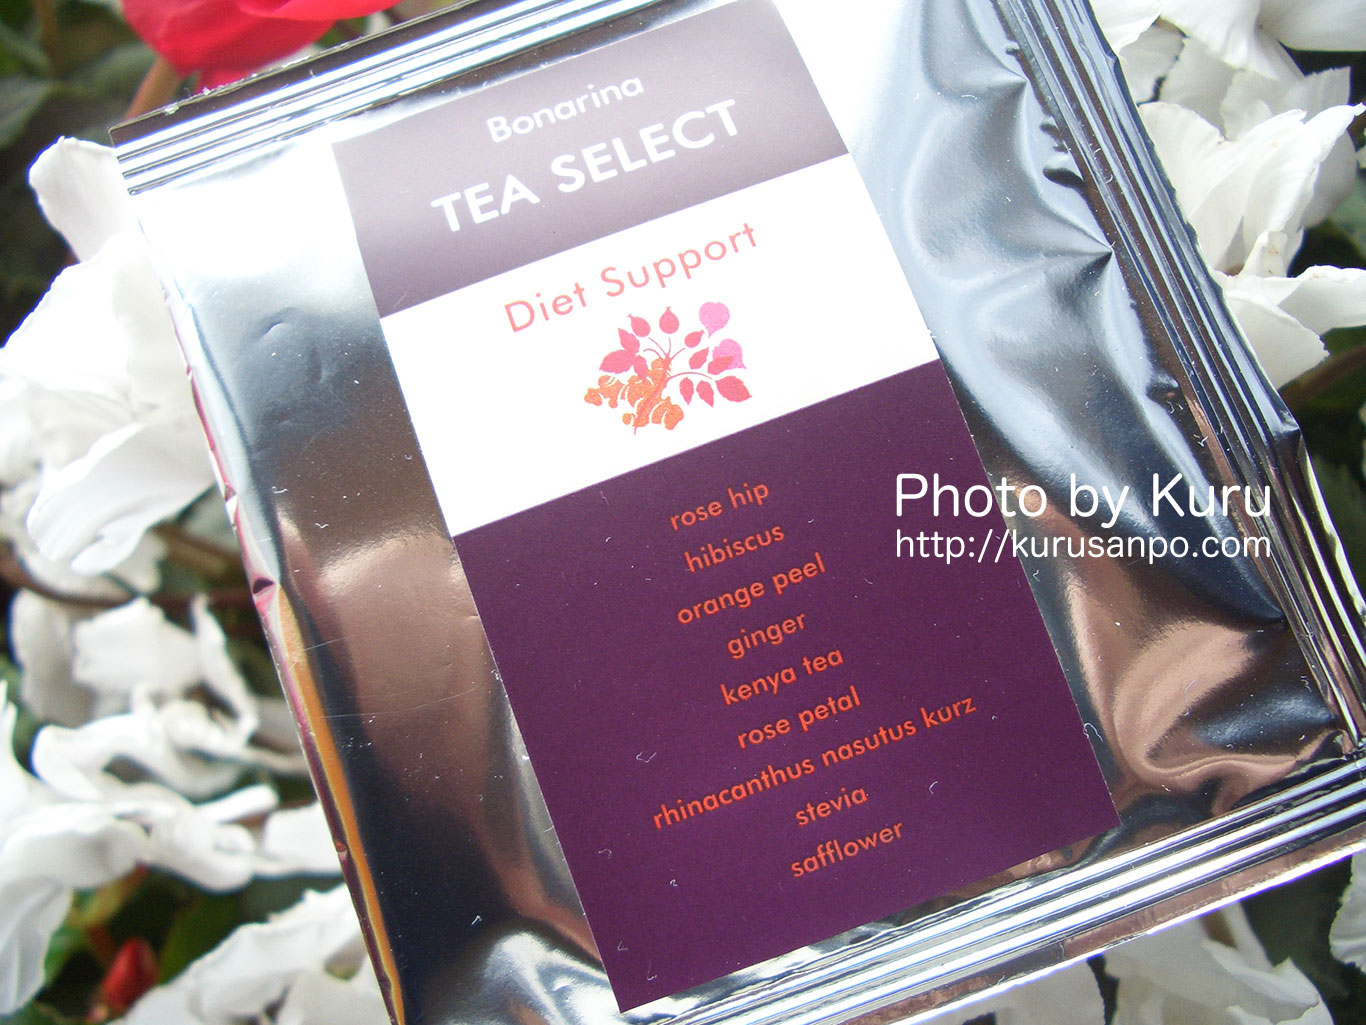 Bonarinaの『TEA SELECT「Diet Support」』を飲んでみた♪【追記有り】